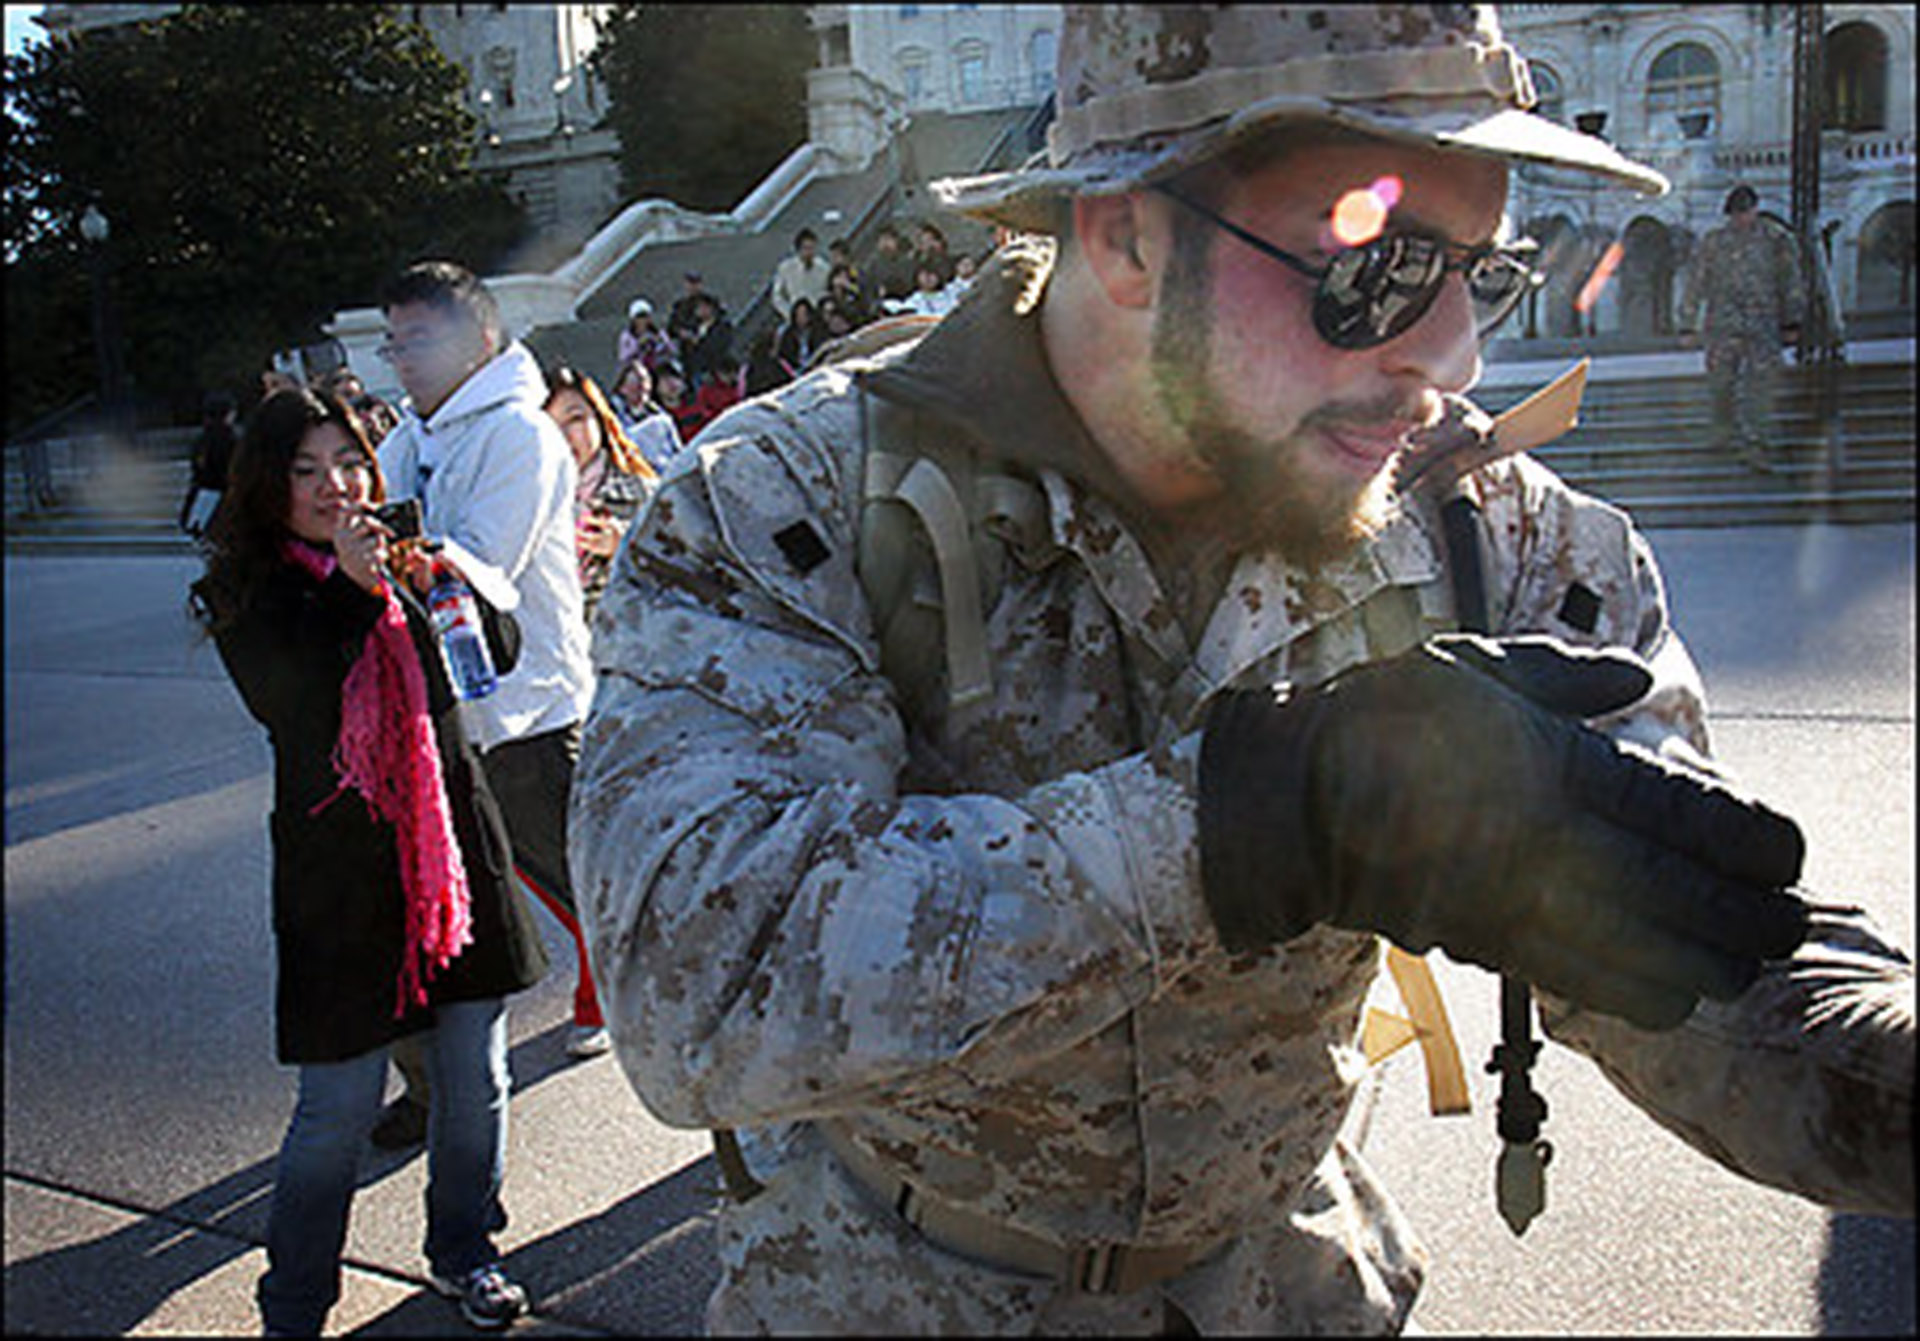 "st/streetthe Andrea Bruce/TWP  3/19/07 189148 Chinese tourists take photos of Adam Kokesh while he uses a pretend gun to ""detain"" volunteers protesting the war with him. Iraq Veterans Against the War ""patrolled"" around the Capitol and Union Station Monday as street theater. They ""detained"" volunteers during the peaceful protest against the war.   StaffPhoto imported to Merlin on  Mon Mar 19 16:56:01 2007"